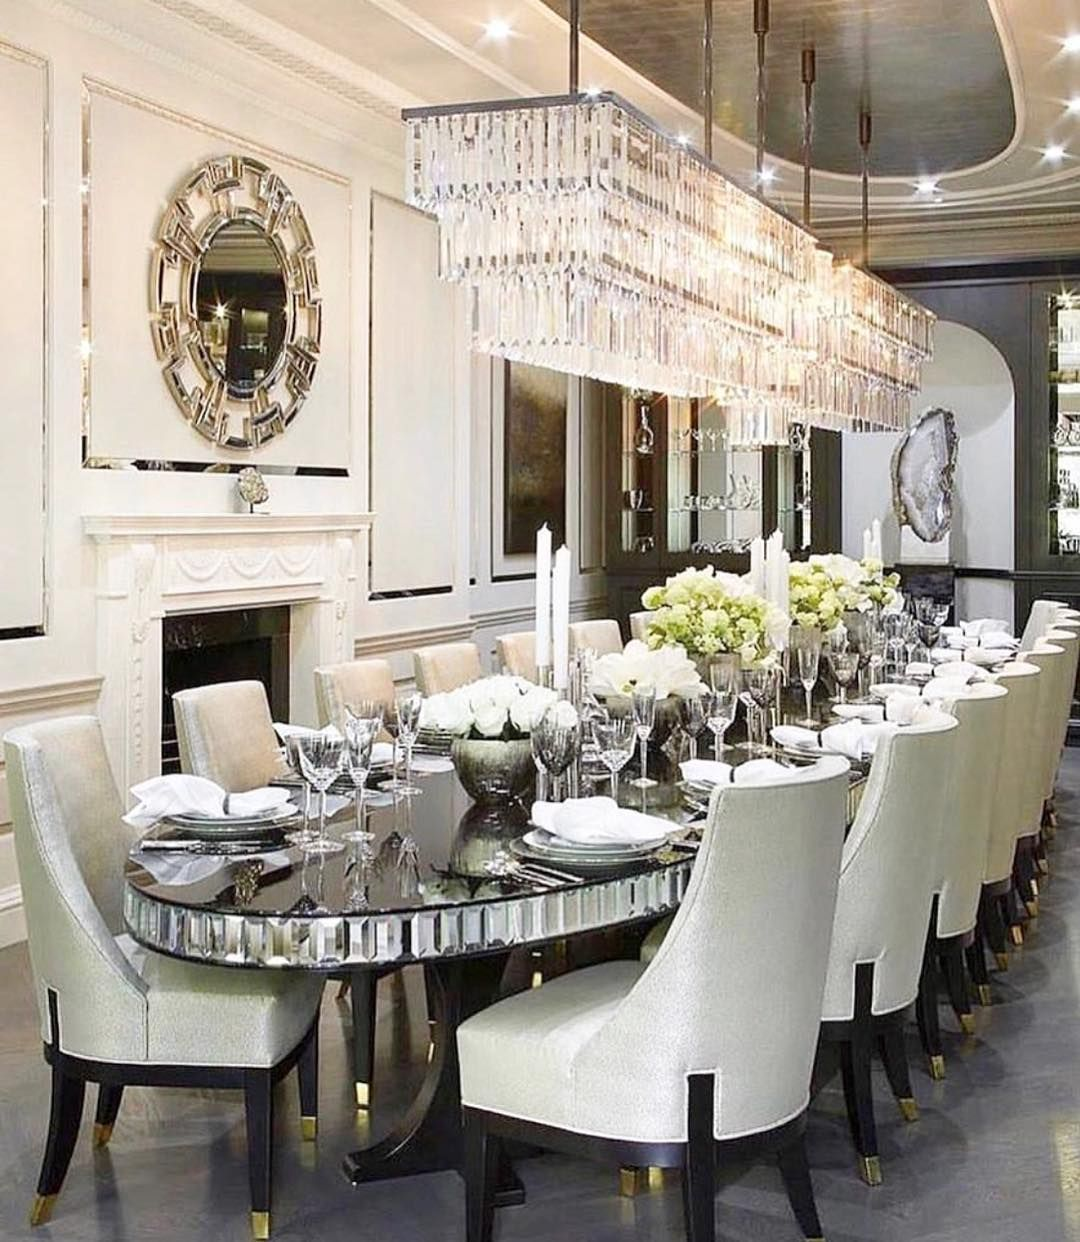 Beautifully Done Definitely A Dream Dining Room Credit Theexquisitehousedesigns Beauty Decor Lifest Elegant Dining Room Luxury Dining Room Luxury Dining